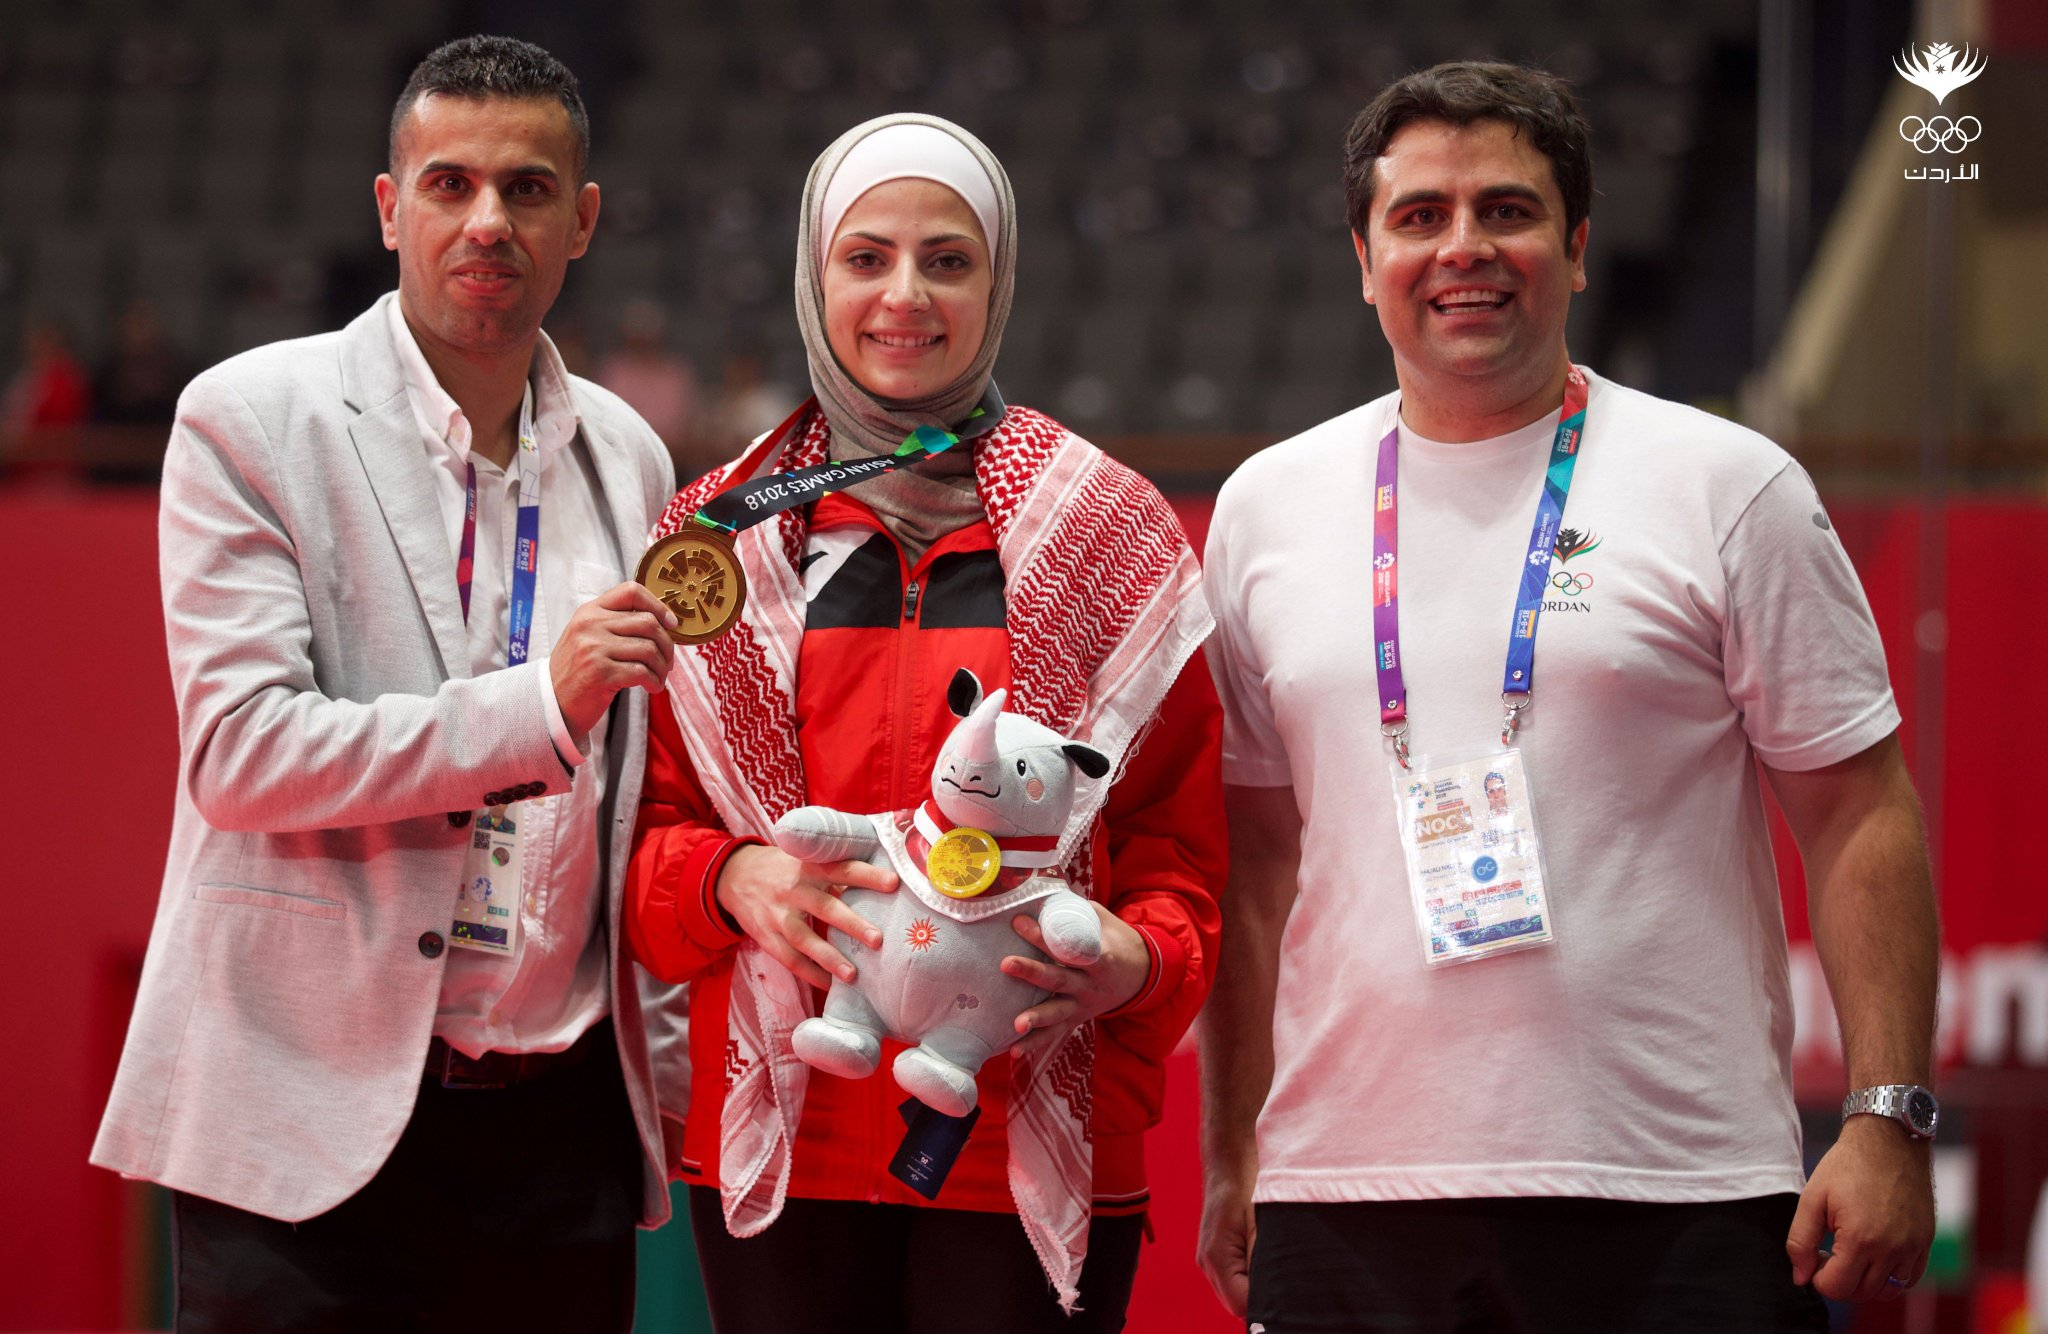 "Jordan Olympic (JOC) on Twitter: ""ASIAN GAMES GOLD FOR AL SADEQ Juliana Al  Sadeq has won gold for Jordan at the Asian Games following a superb  performance in the Taekwondo -67kg competition"